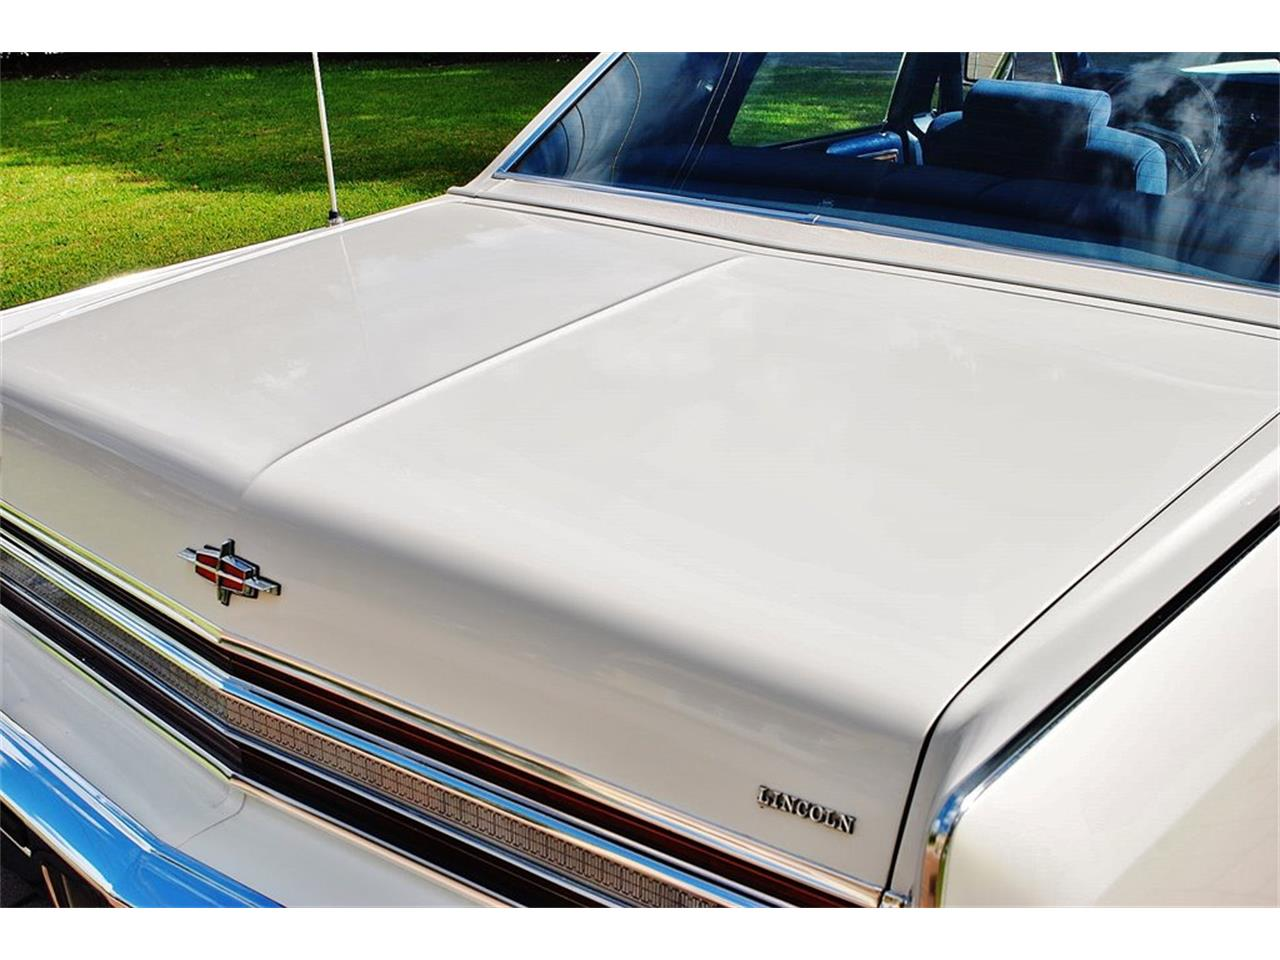 Large Picture of '79 Lincoln Continental located in Lakeland Florida - $19,900.00 - OS3G